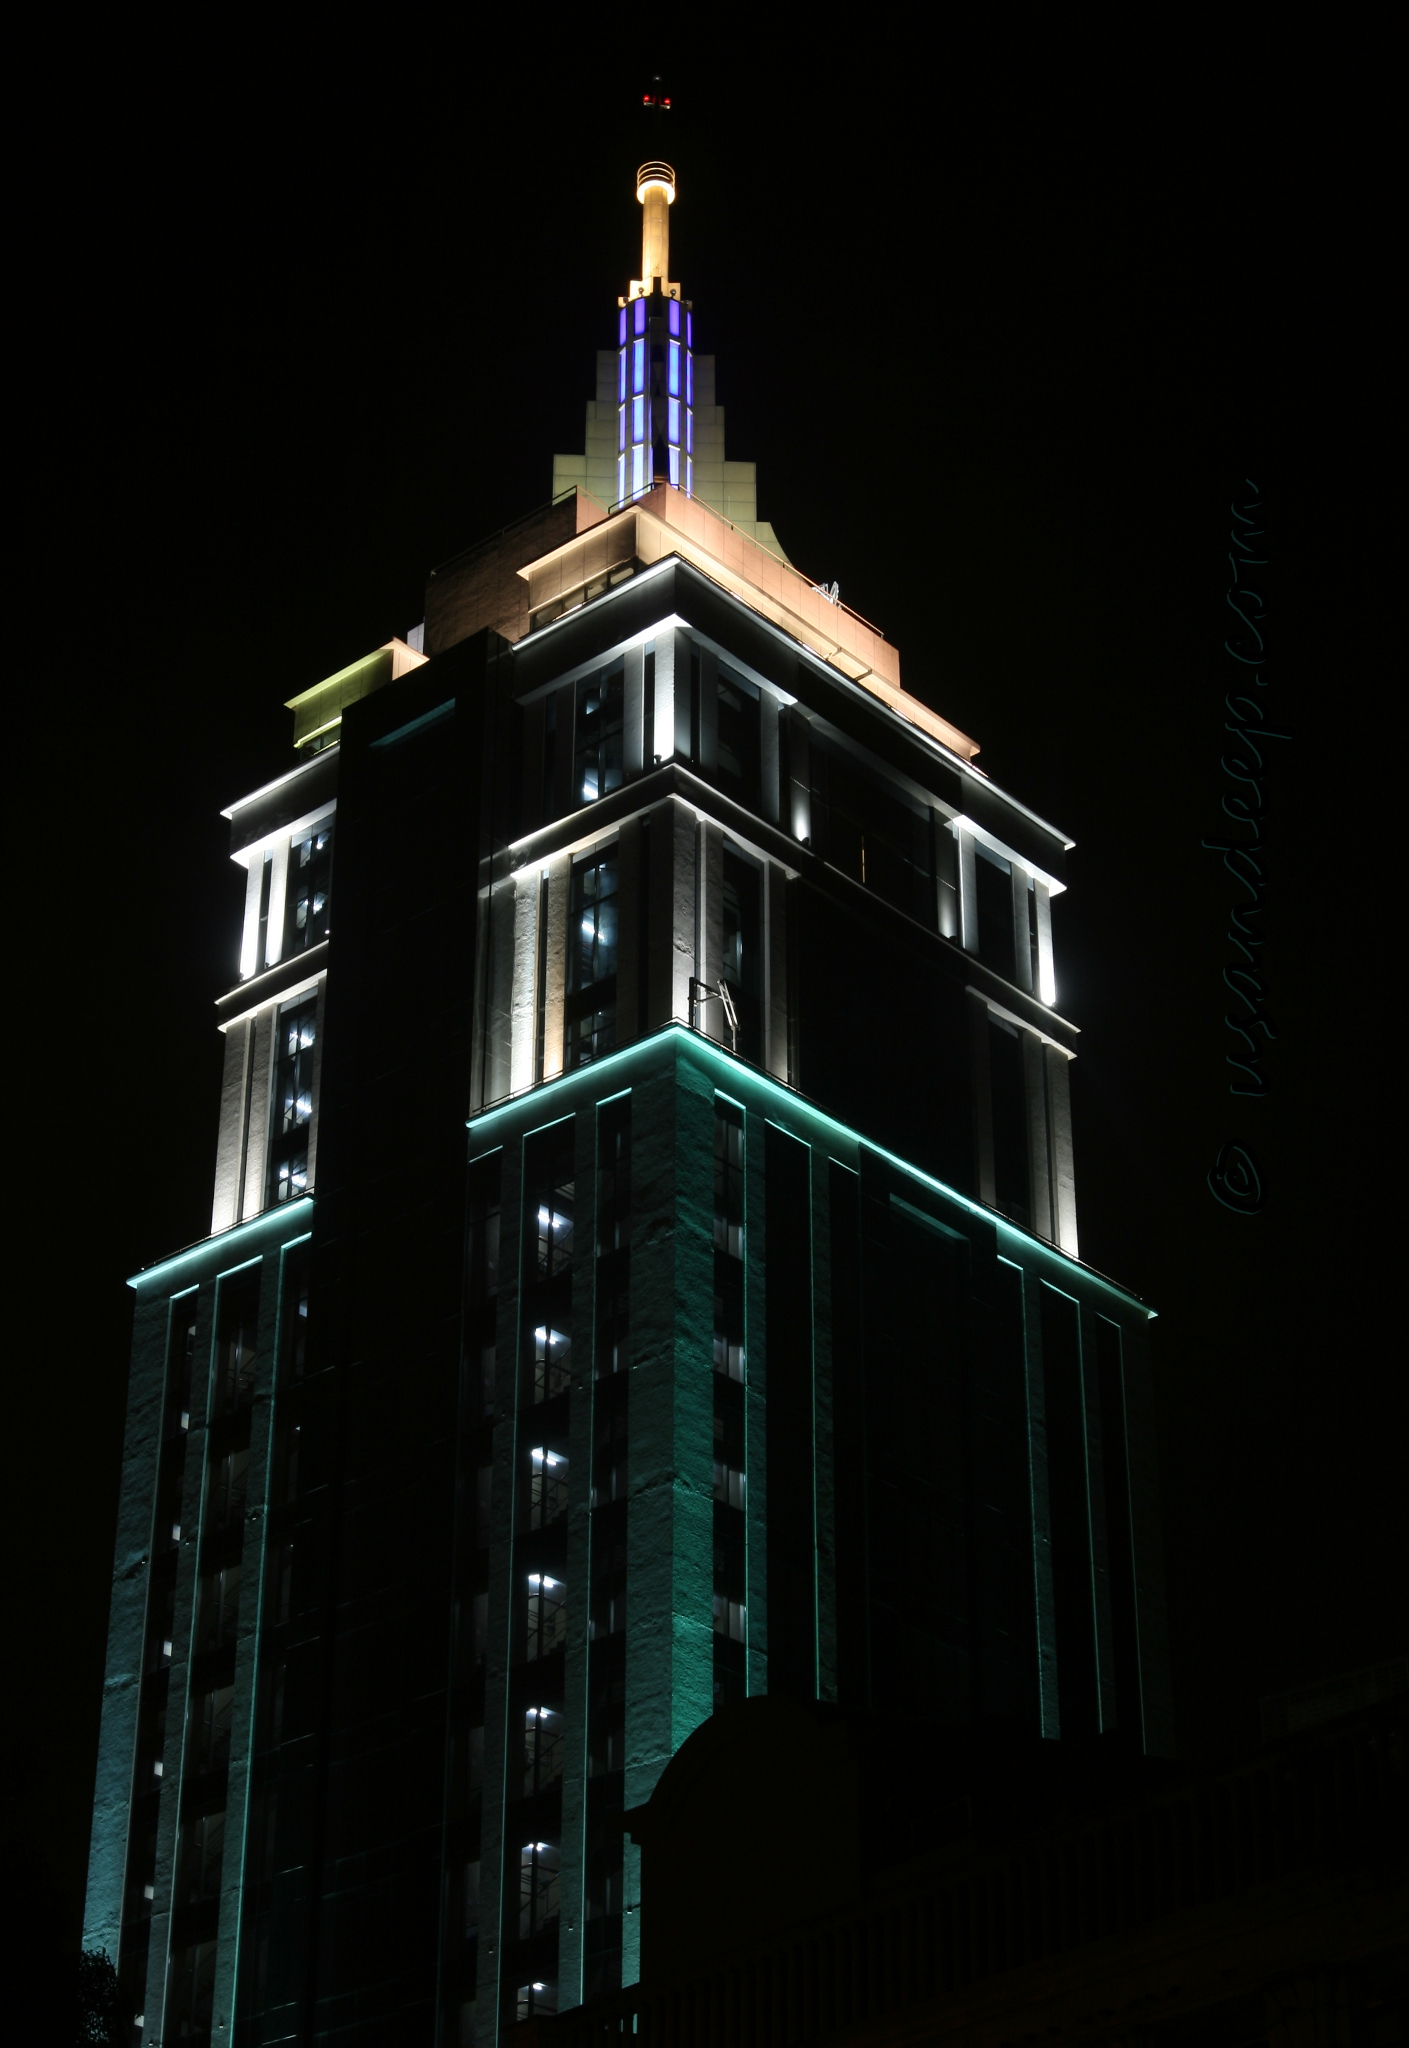 UB tower at night